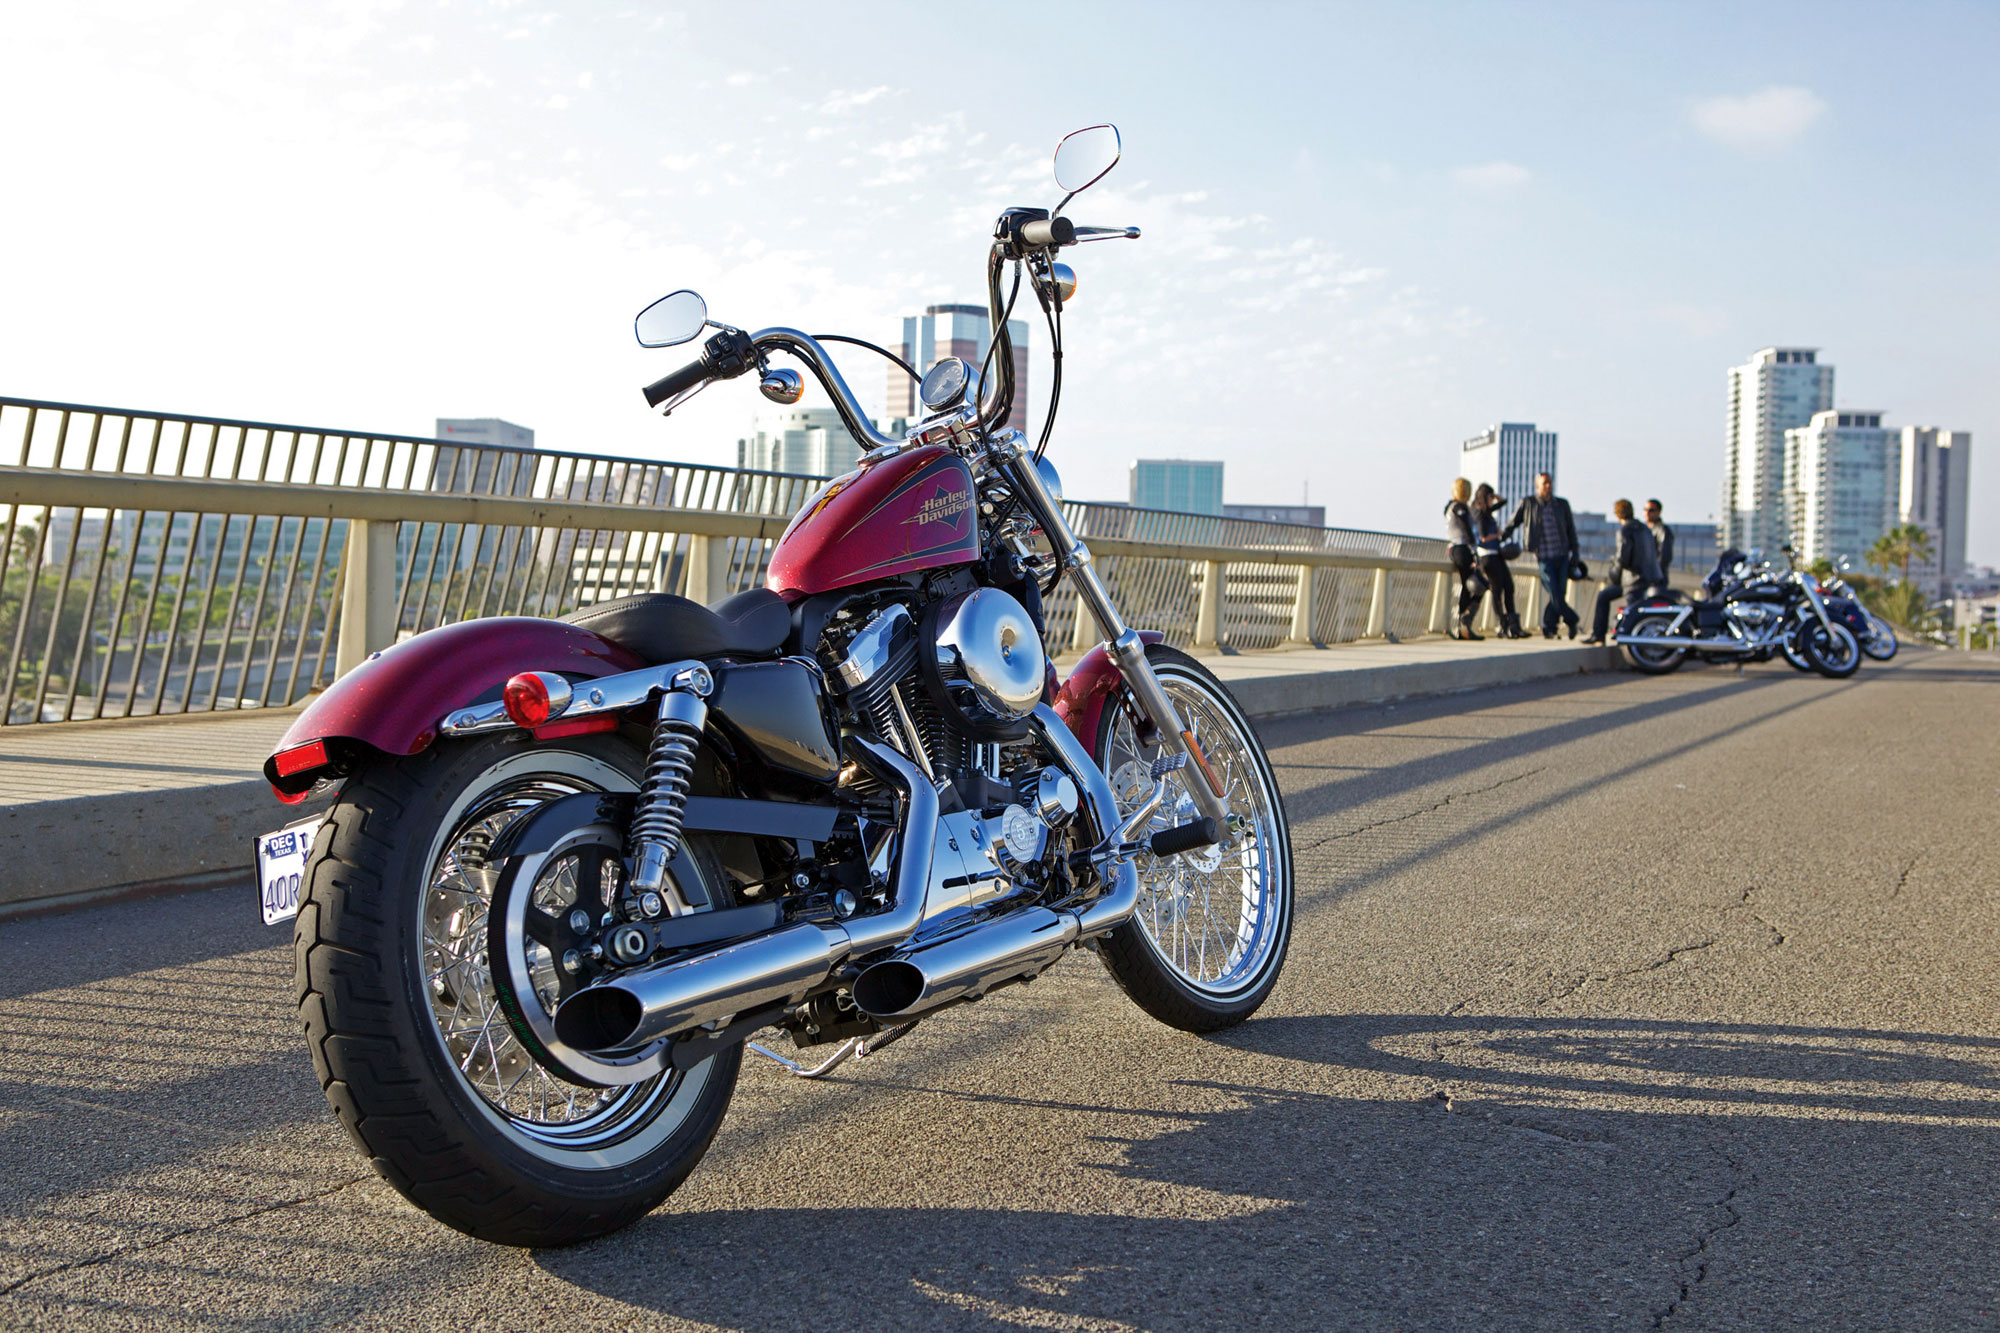 Harley Davidson: 2012 Harley-Davidson XL1200V Seventy-Two Review